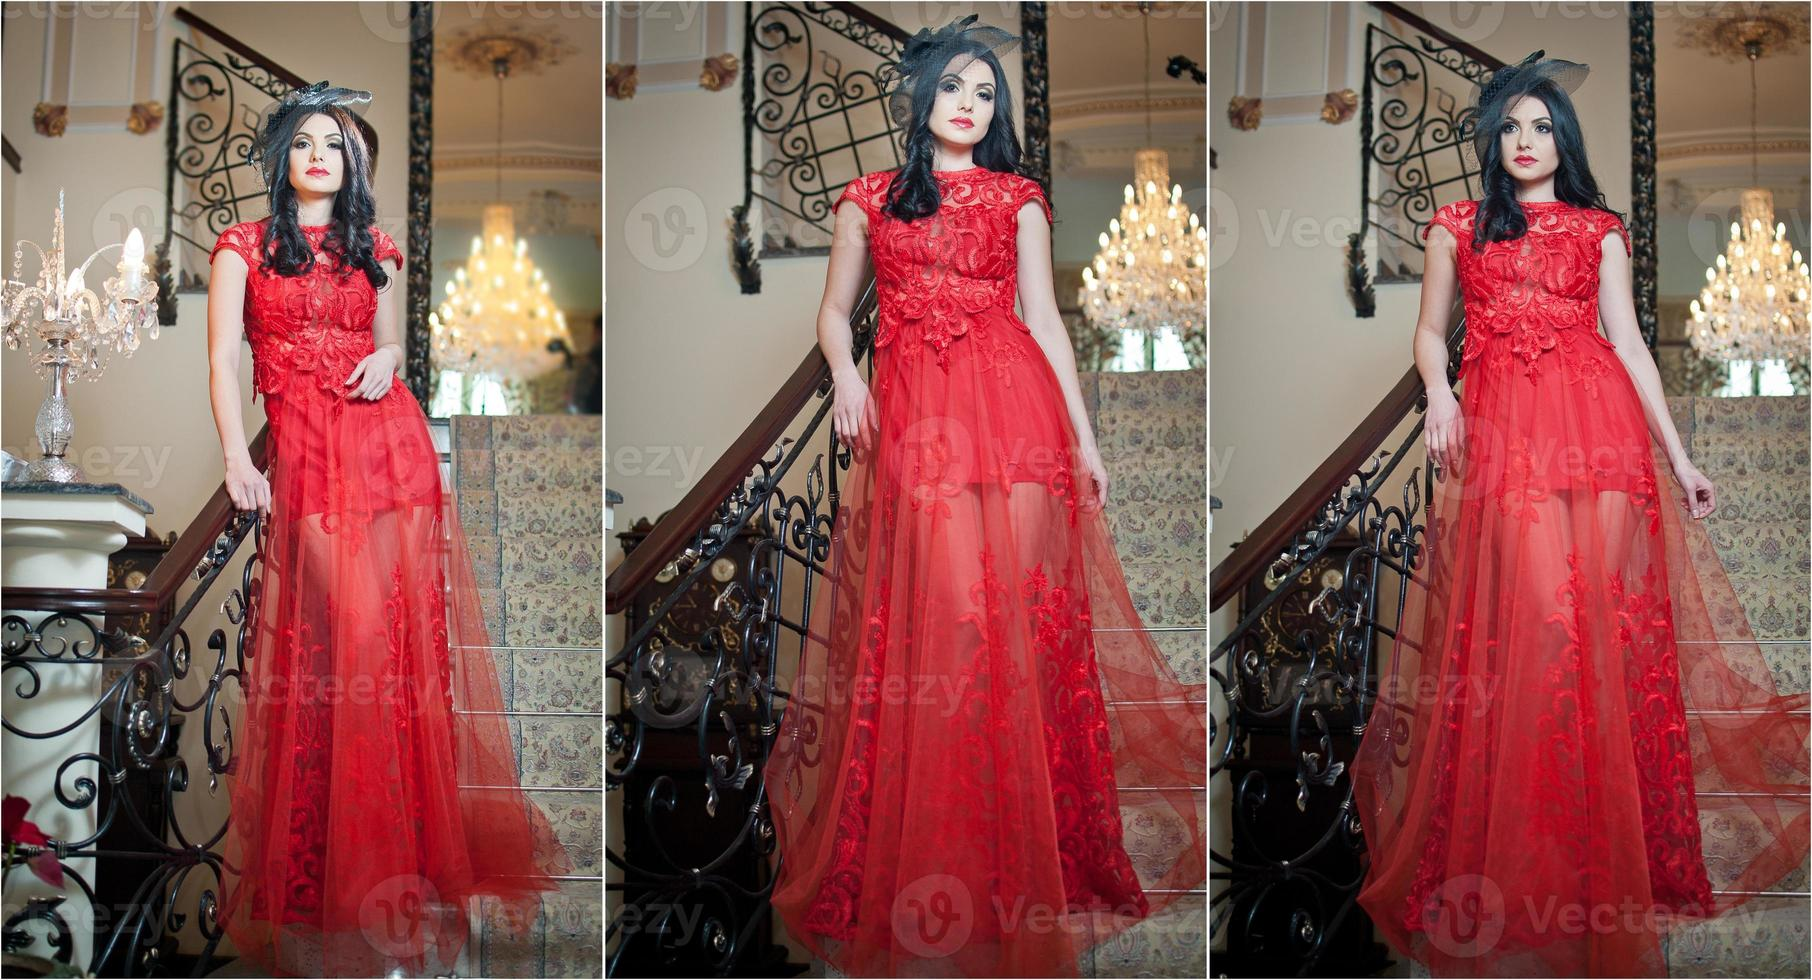 Sensual elegant young woman in red long dress indoor shot. photo